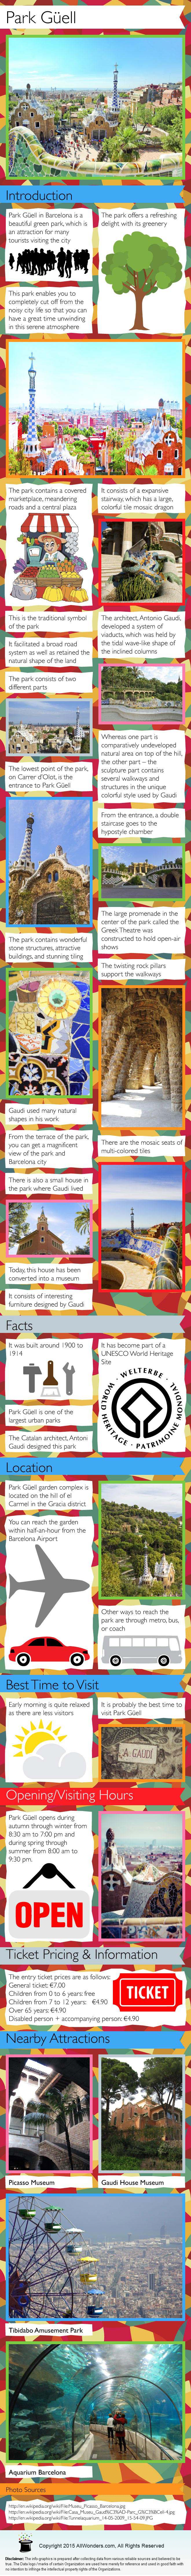 Park Guell Infographic